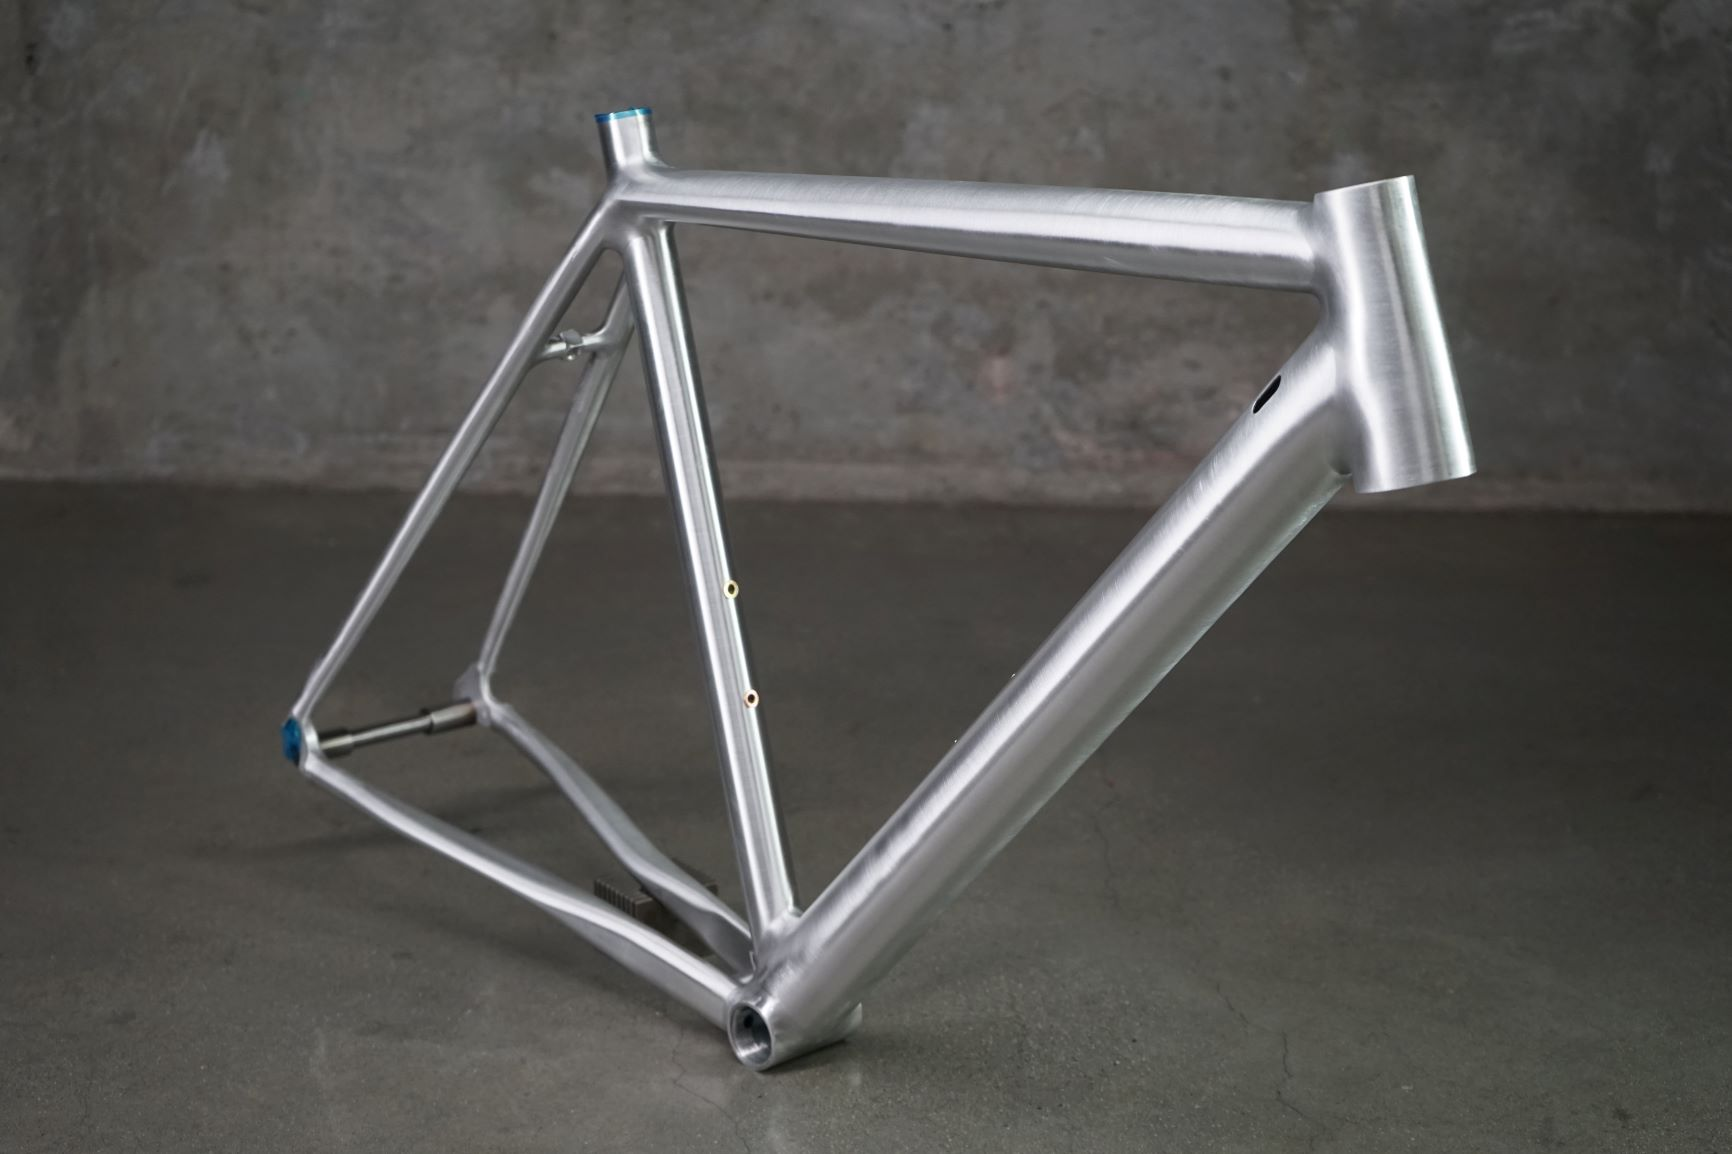 R54I18 54CM RIM BRAKE ROAD READY TO PAINT 1.5 HT ENVE FORK $1850.JPG